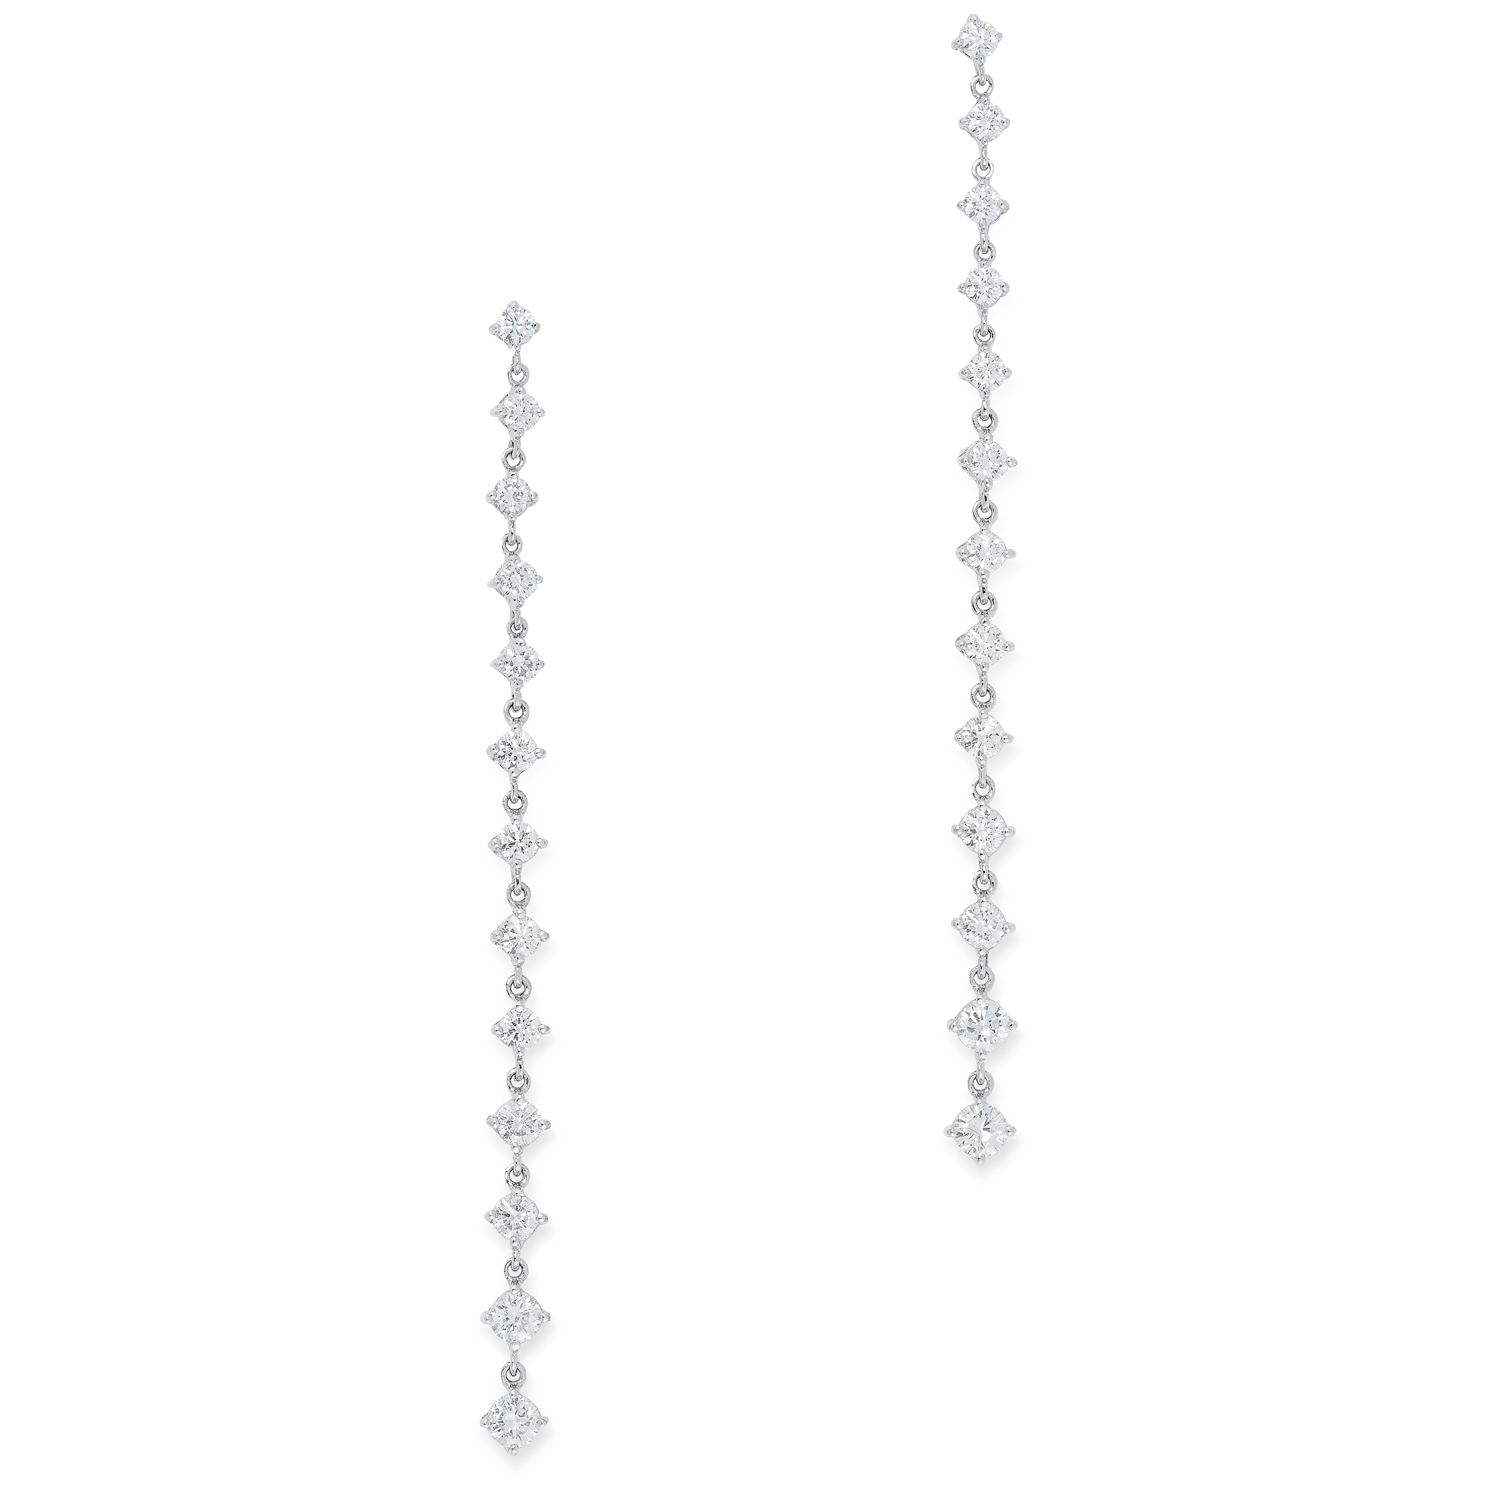 A PAIR OF DIAMOND DROP EARRINGS each designed as a single row of thirteen graduated round cut